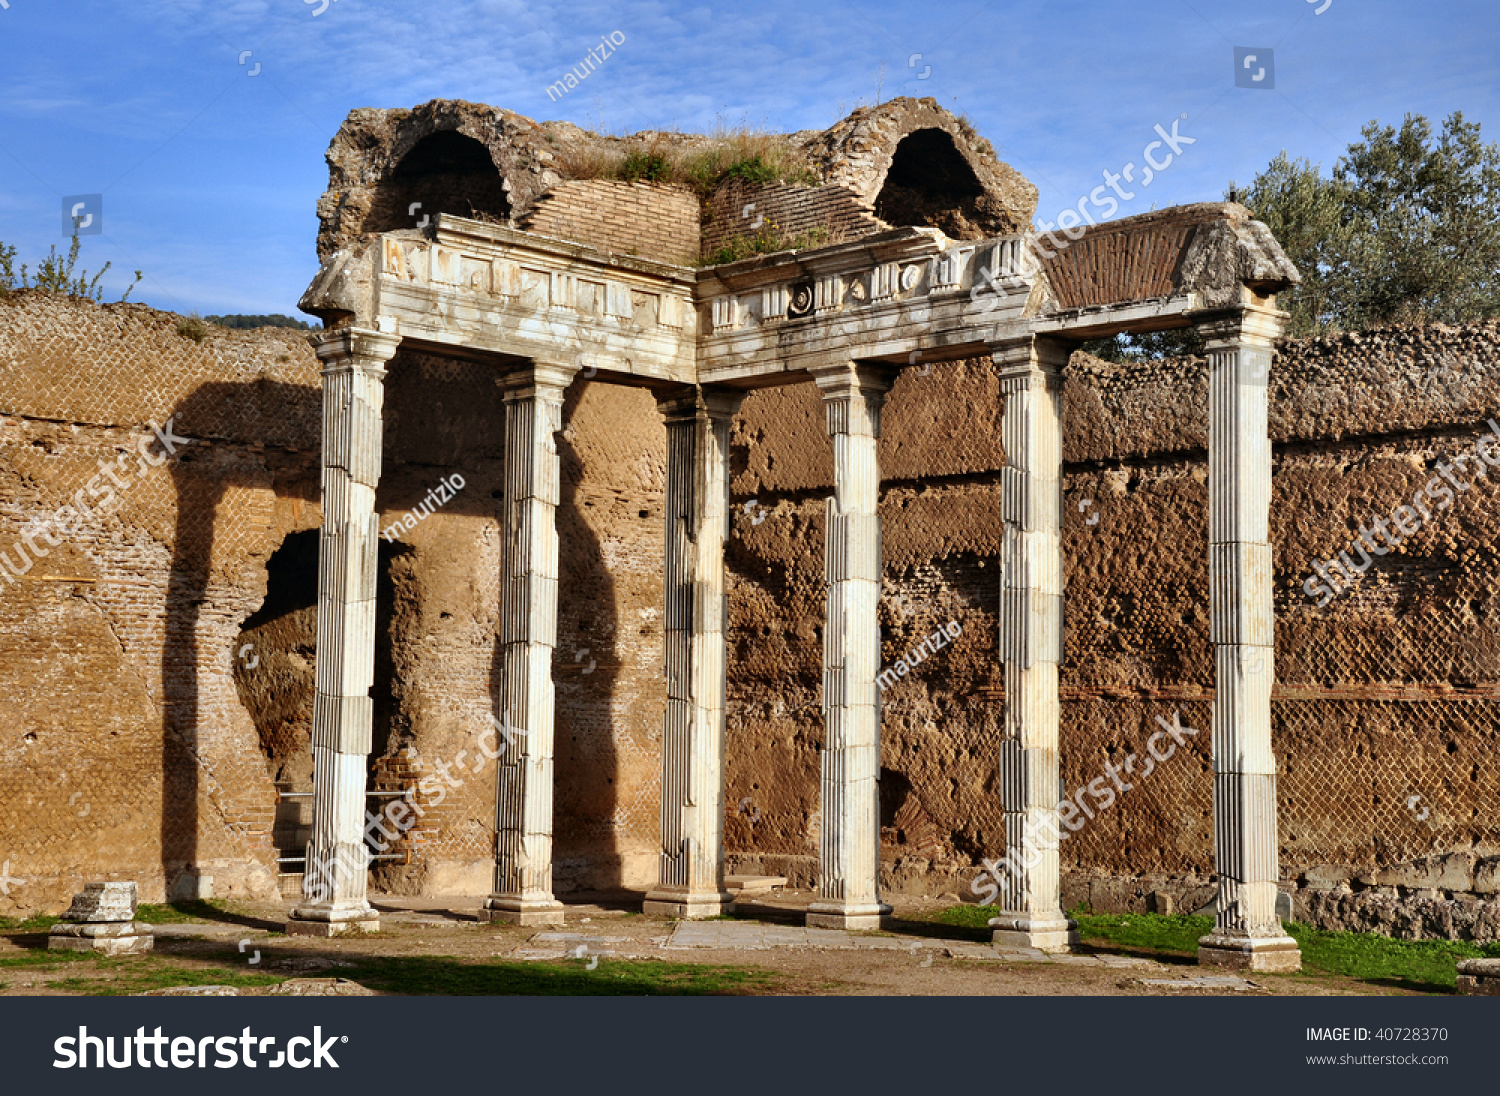 Villa Adriana Tivoli Rome Italy Stock Photo (Download Now) 40728370 ...